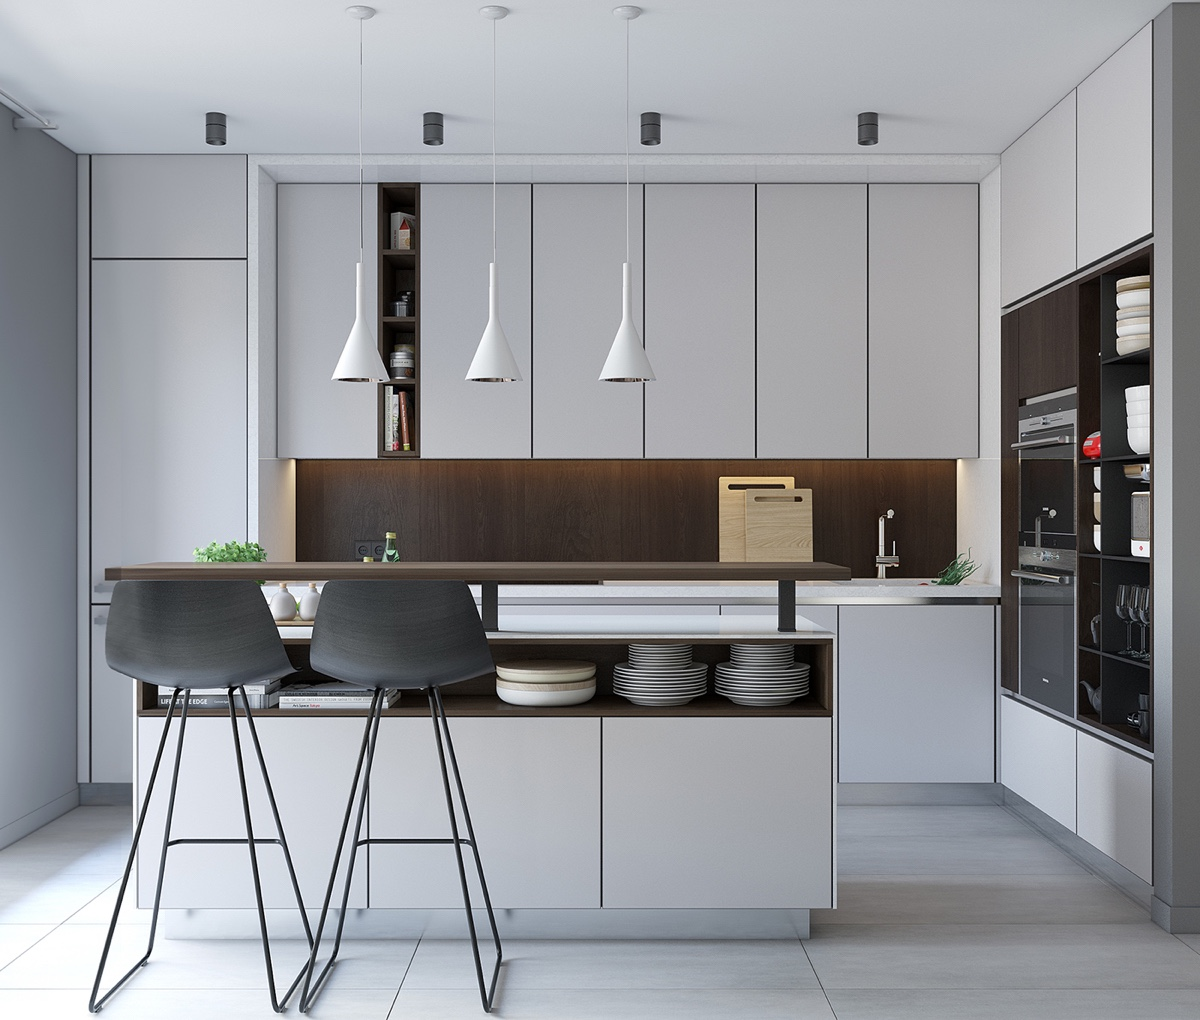 Long Lines Kitchen Vertical Grey Cabinetry - Spacious looking one bedroom apartment with dark wood accents